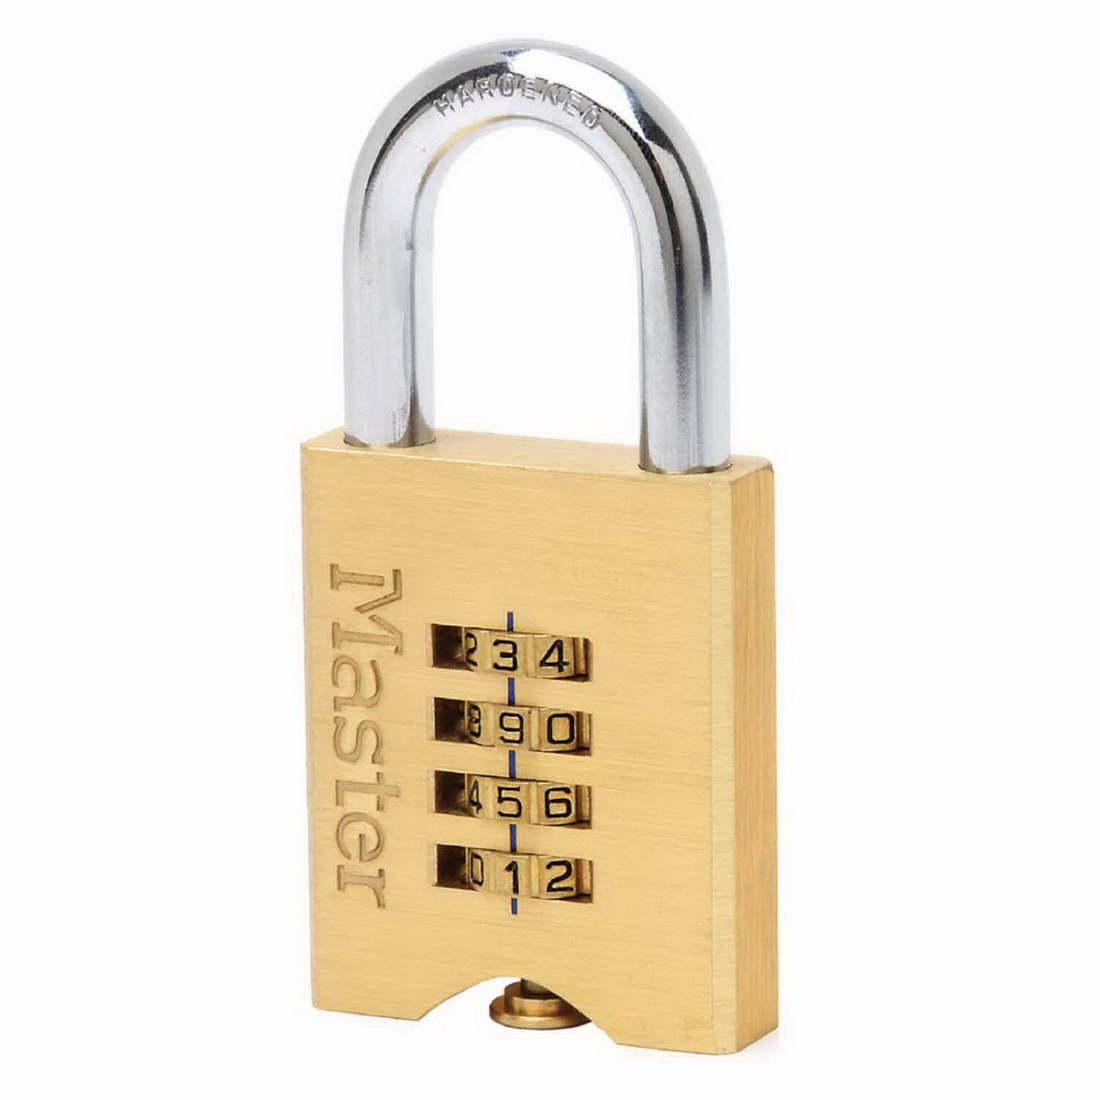 No 651 Combination Reset Padlock 50mm Solid Brass 651DAU